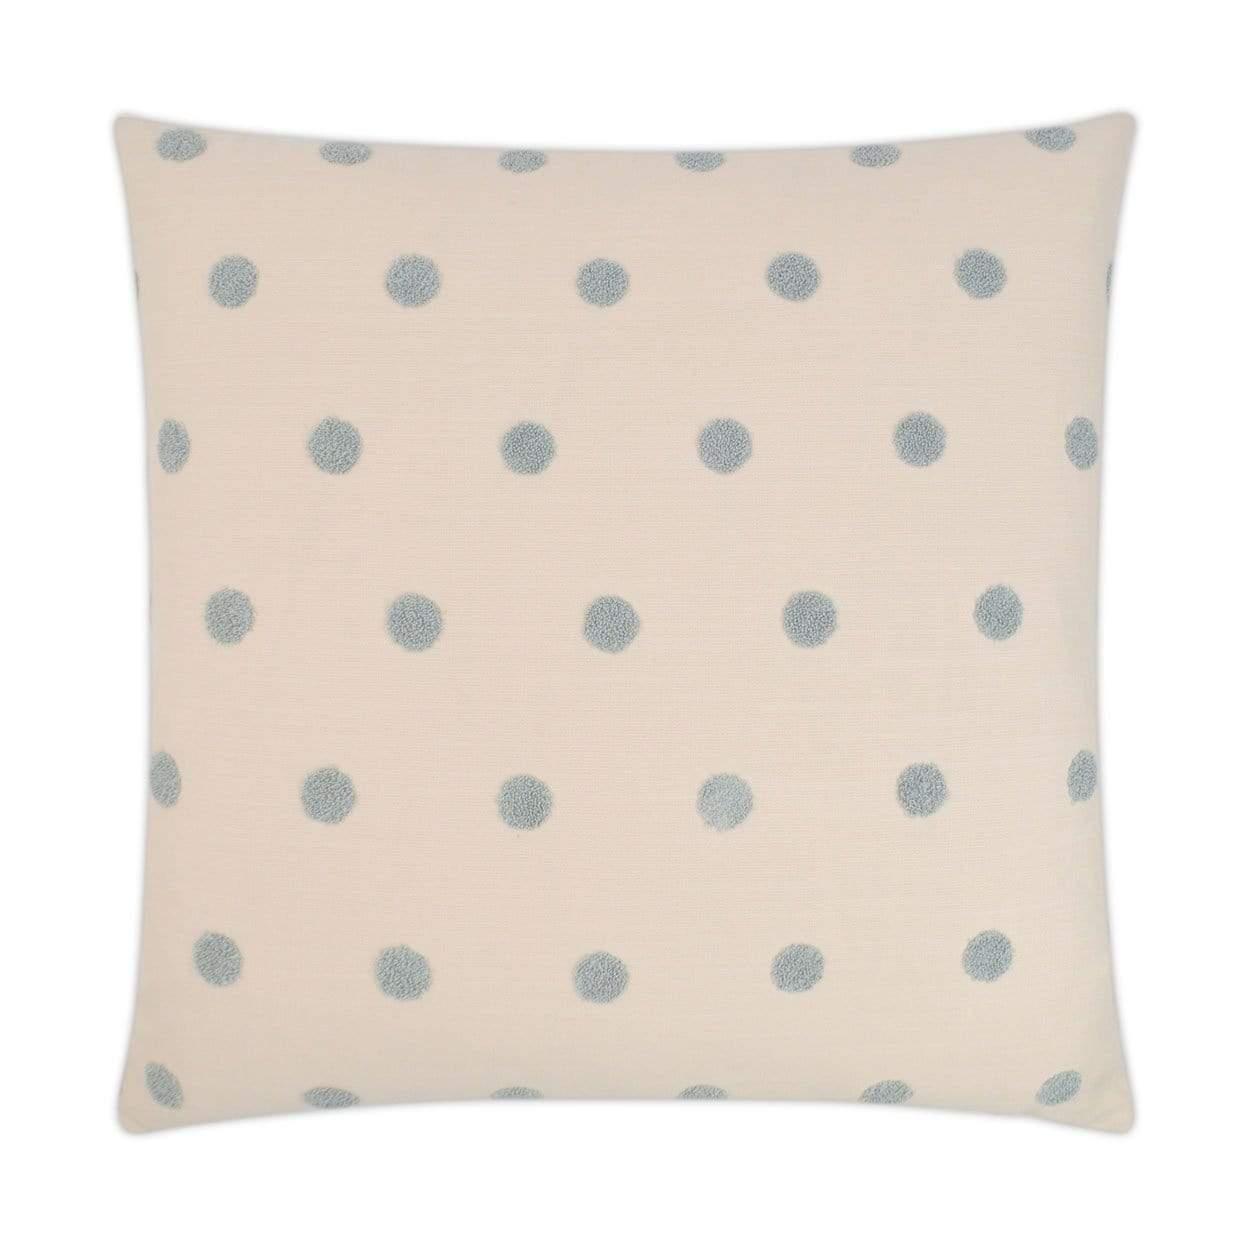 D.V. Kap D.V. Kap Puff Dotty Pillow - Available in 2 Colors Natural 3150-N